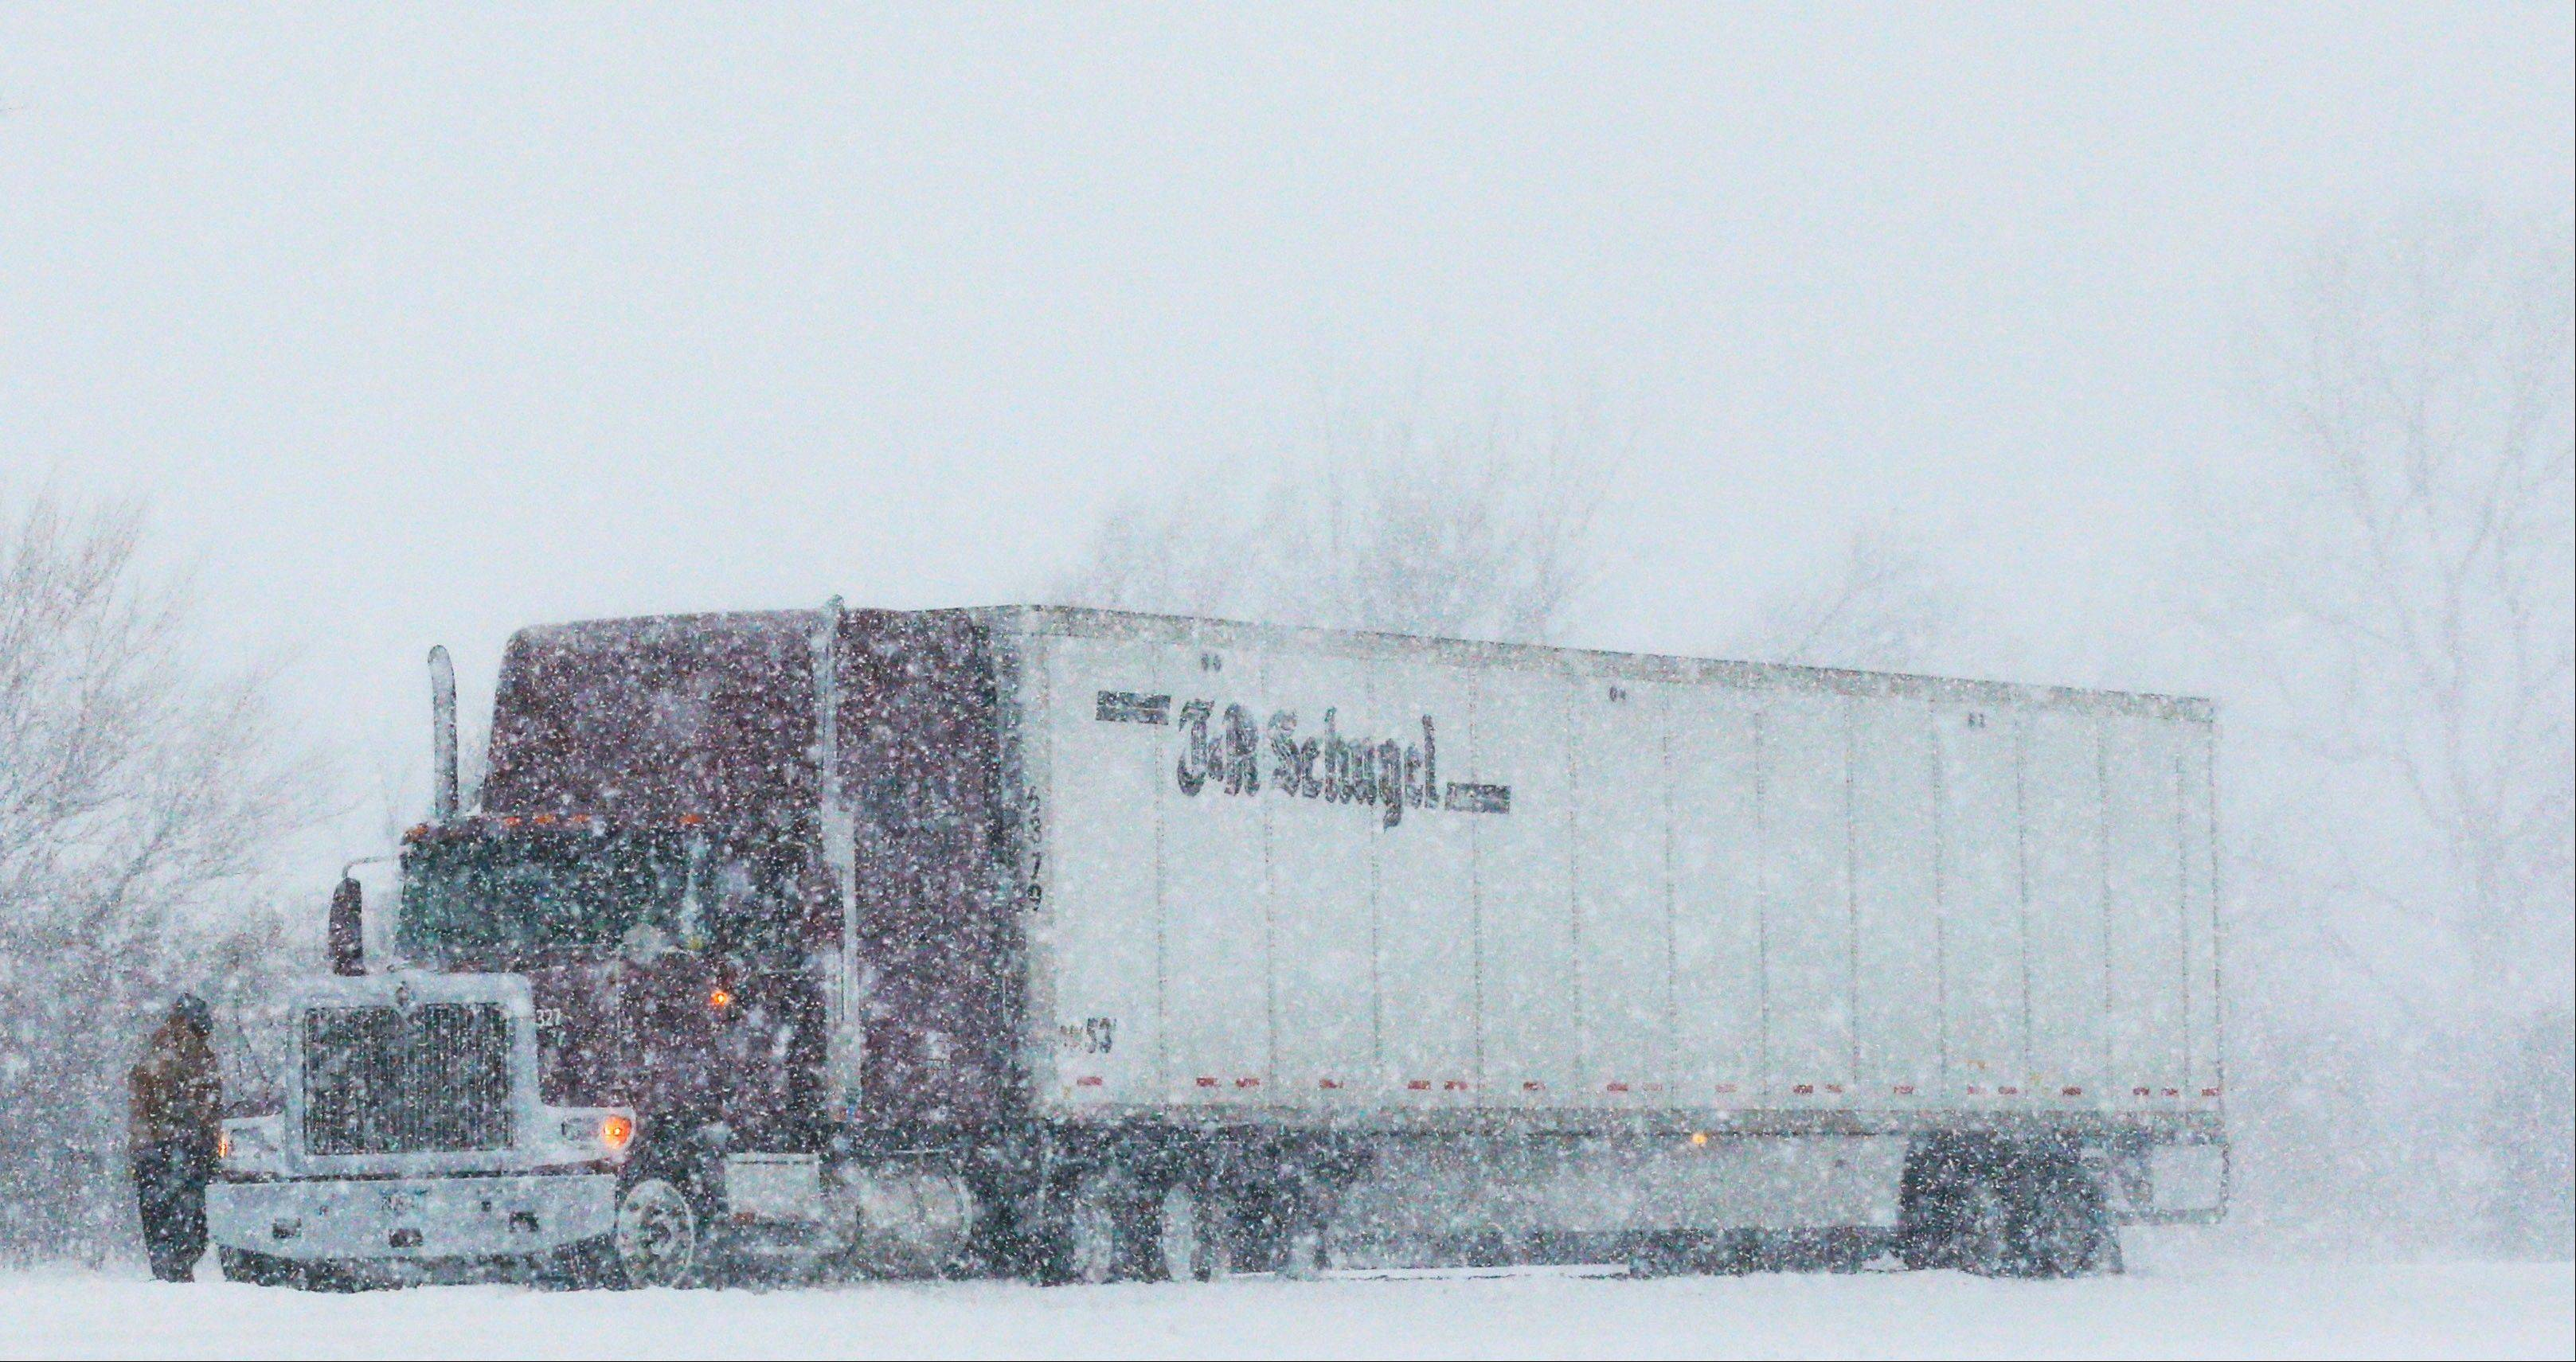 A trucker stops in almost whiteout conditions along K-10 highway near Eudora, Kan., Thursday, Feb. 21, 2013. The Kansas Turnpike Authority encouraged drivers to stay off the turnpike entirely; it runs from Oklahoma to Kansas City. There was virtually zero visibility on the turnpike early Thursday. And I-70 and other major highways in Kansas were snowpacked and icy, according to the Kansas Department of Transportation. Kansas Gov. Sam Brownback closed executive offices, except for essential personnel. He urged residents to have an extra cup of coffee, get out a board game and play with their children.